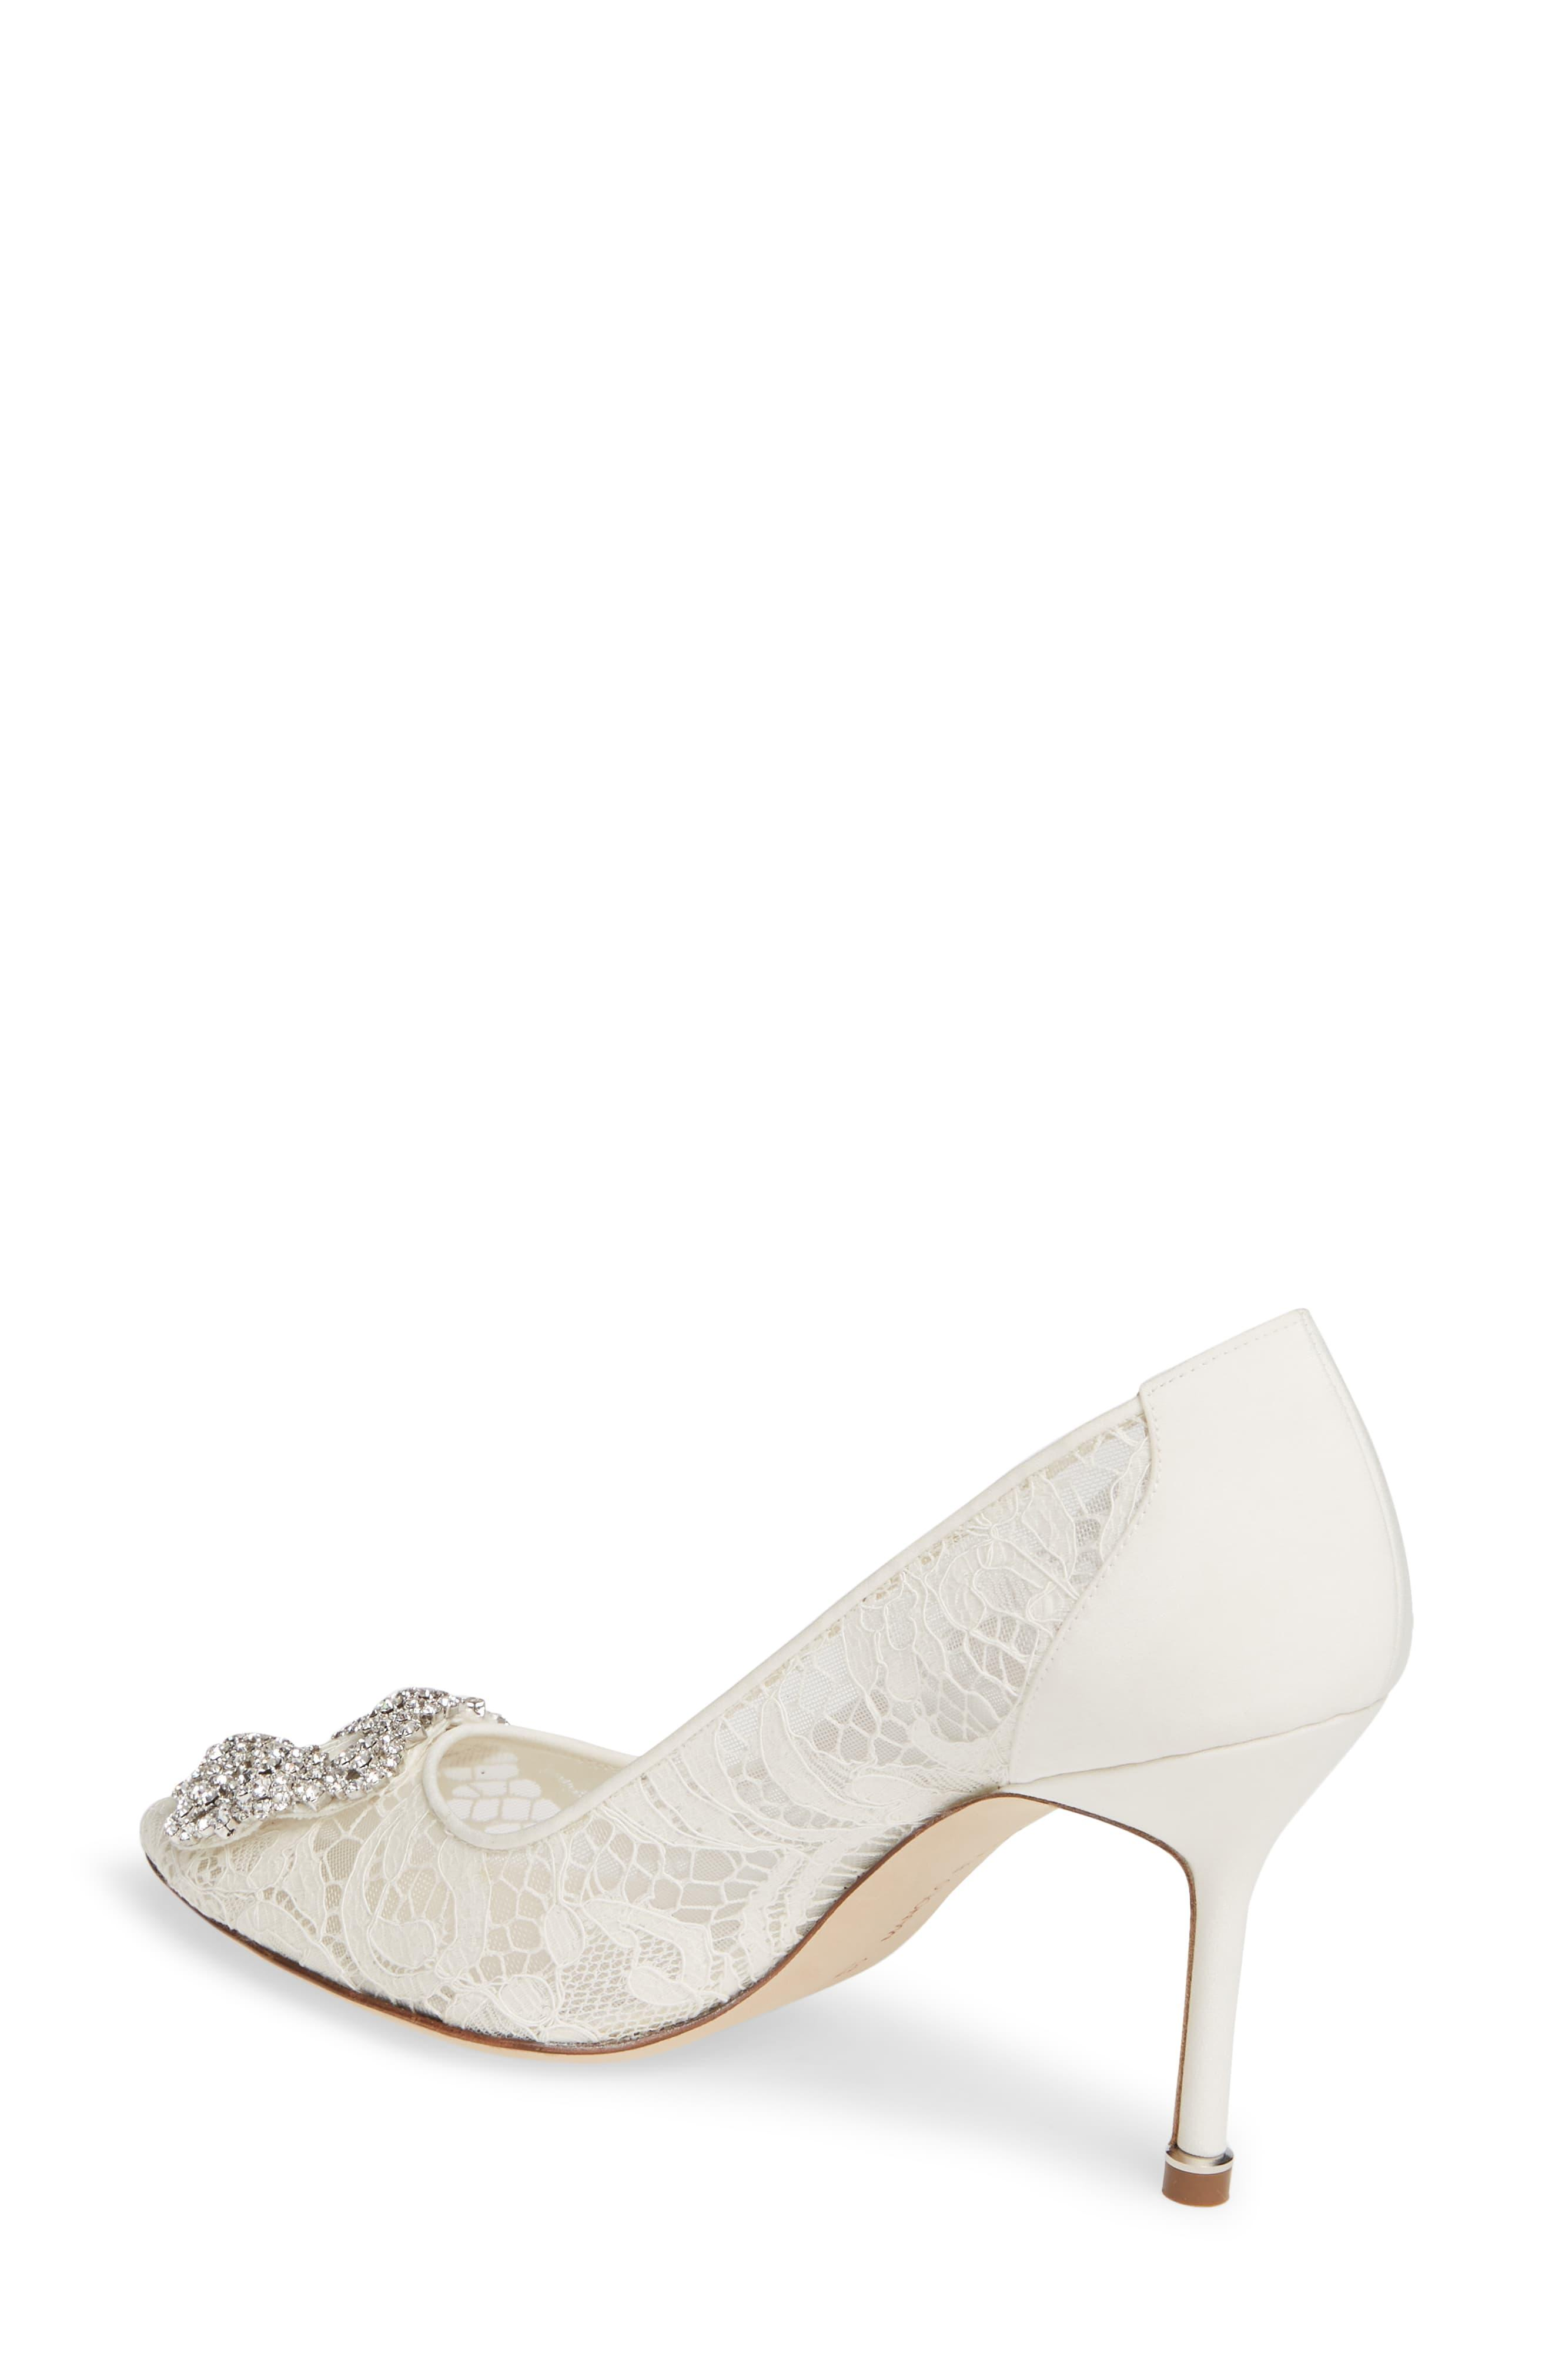 df7ac140aaa84 Manolo Blahnik White Hangisi Brooch Lace Pump. View fullscreen